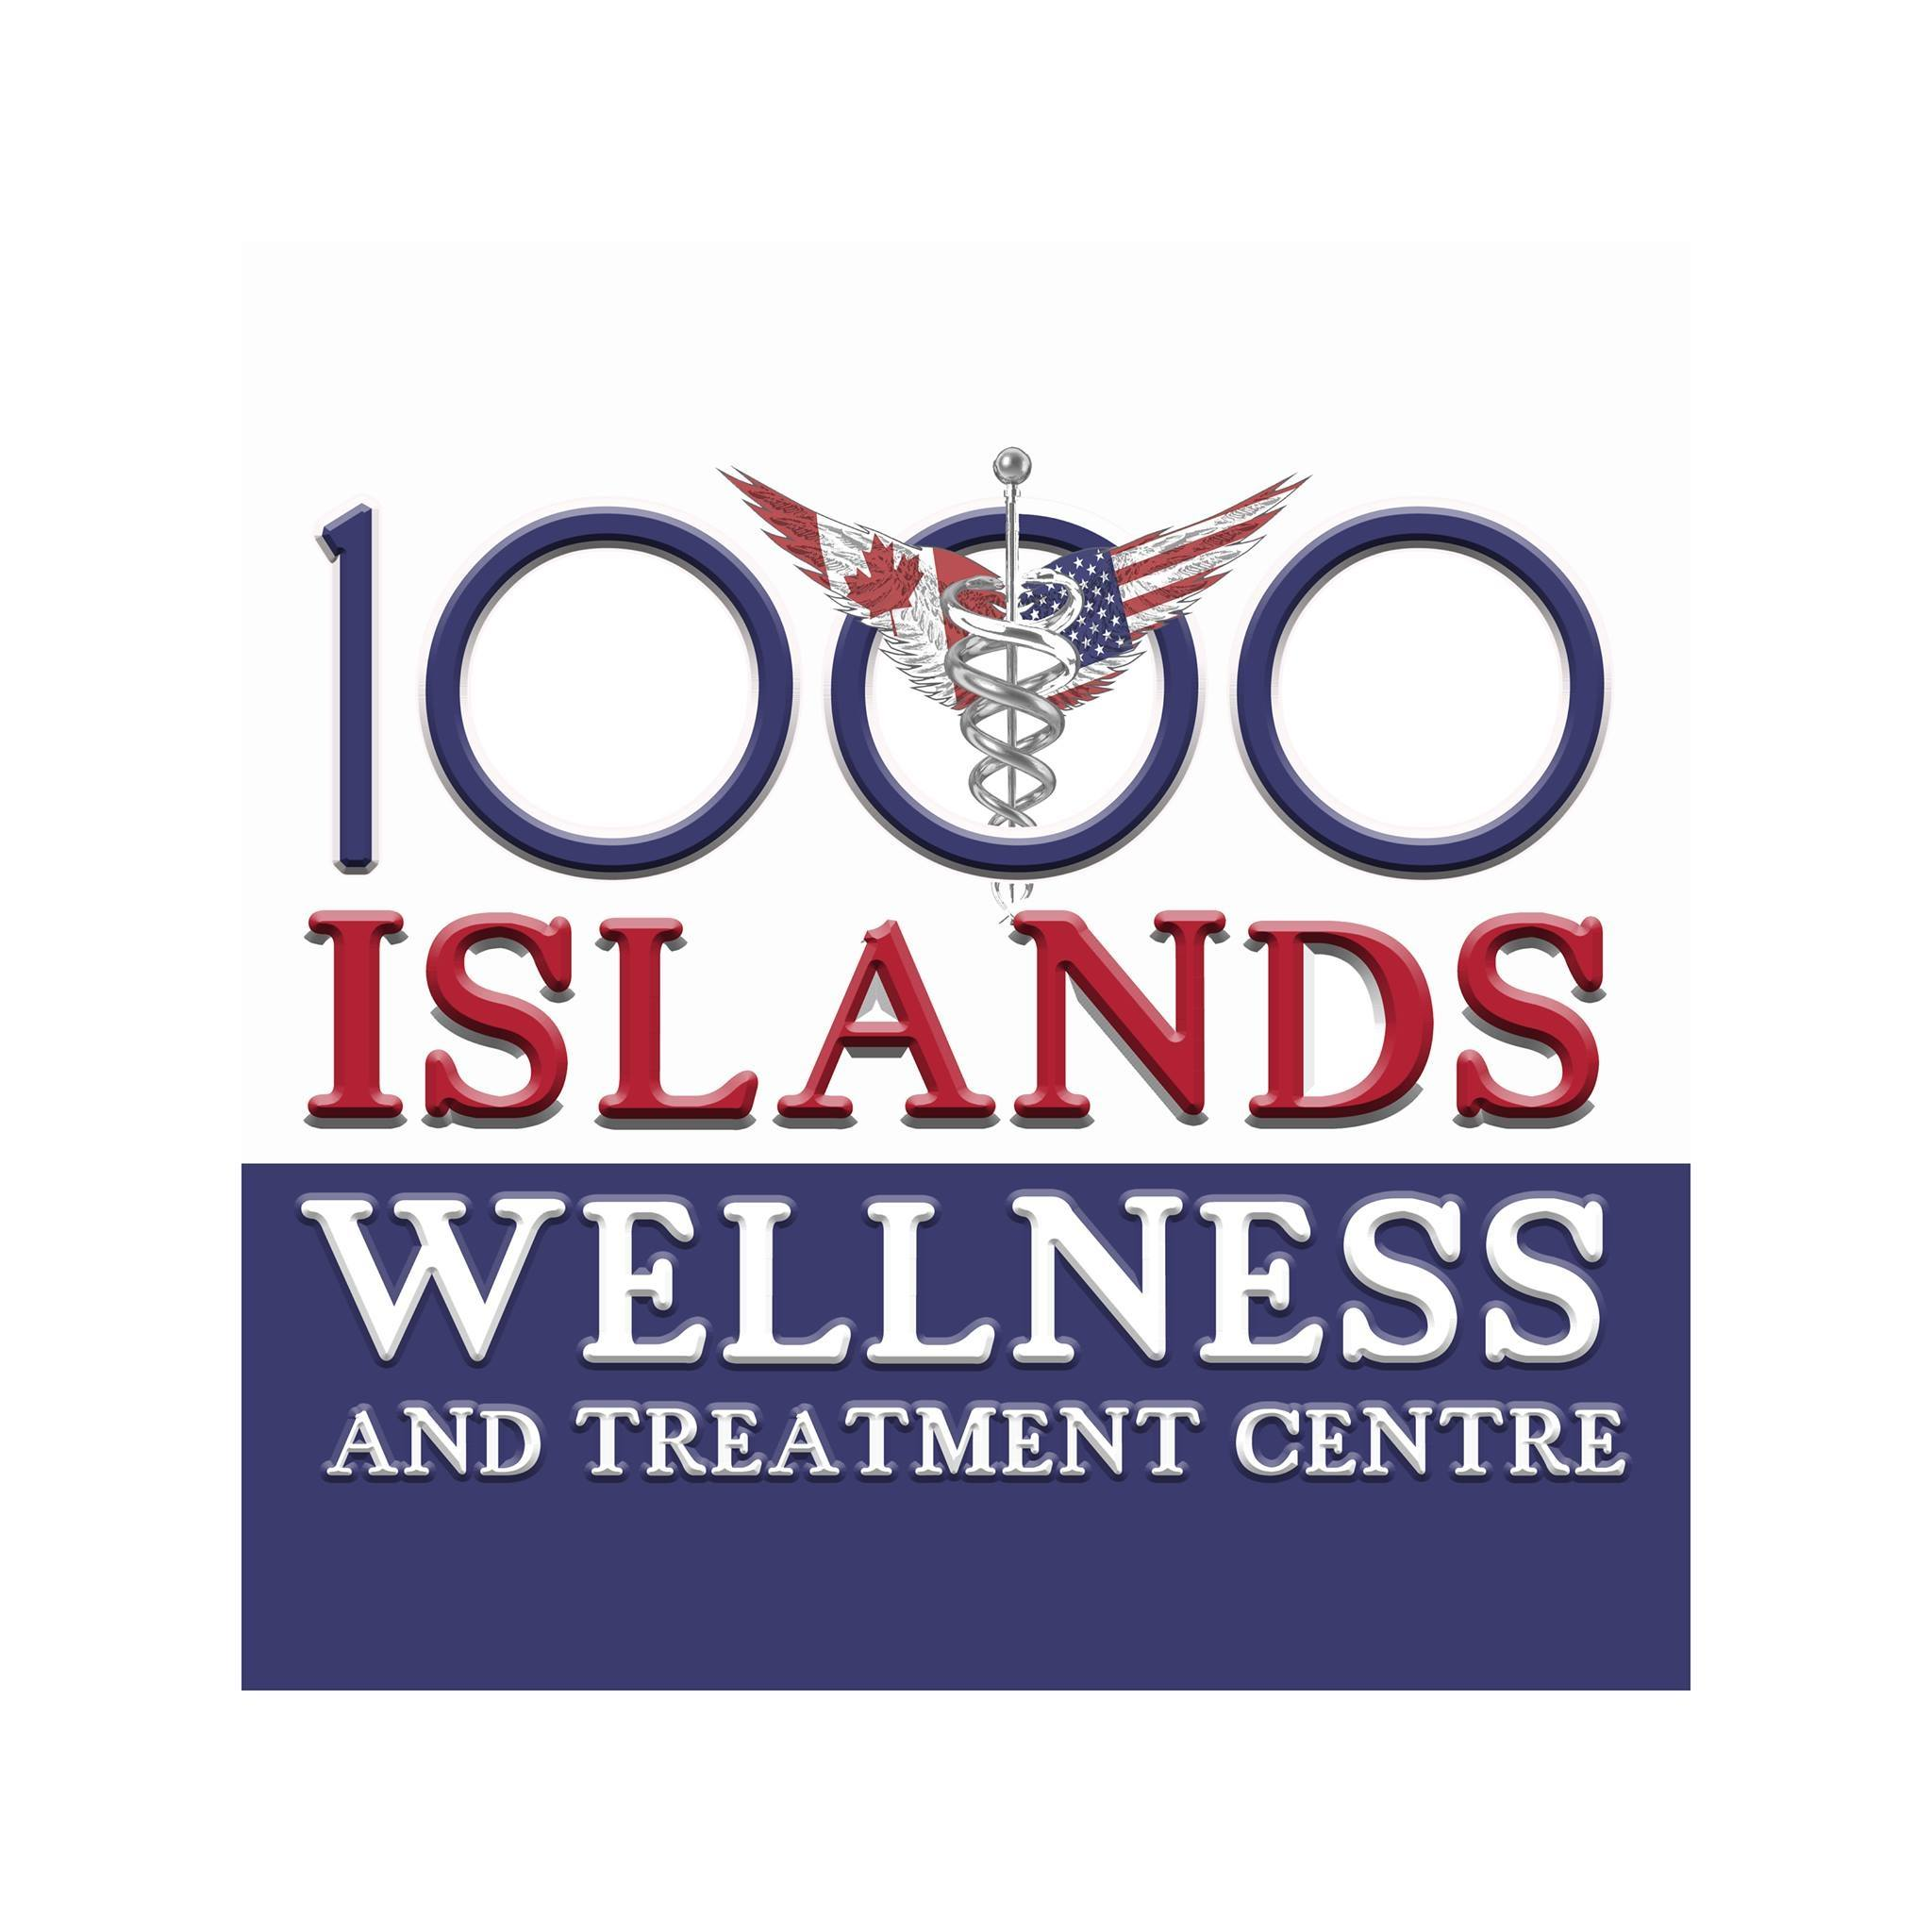 1000 Islands Wellness and Treatment Centre